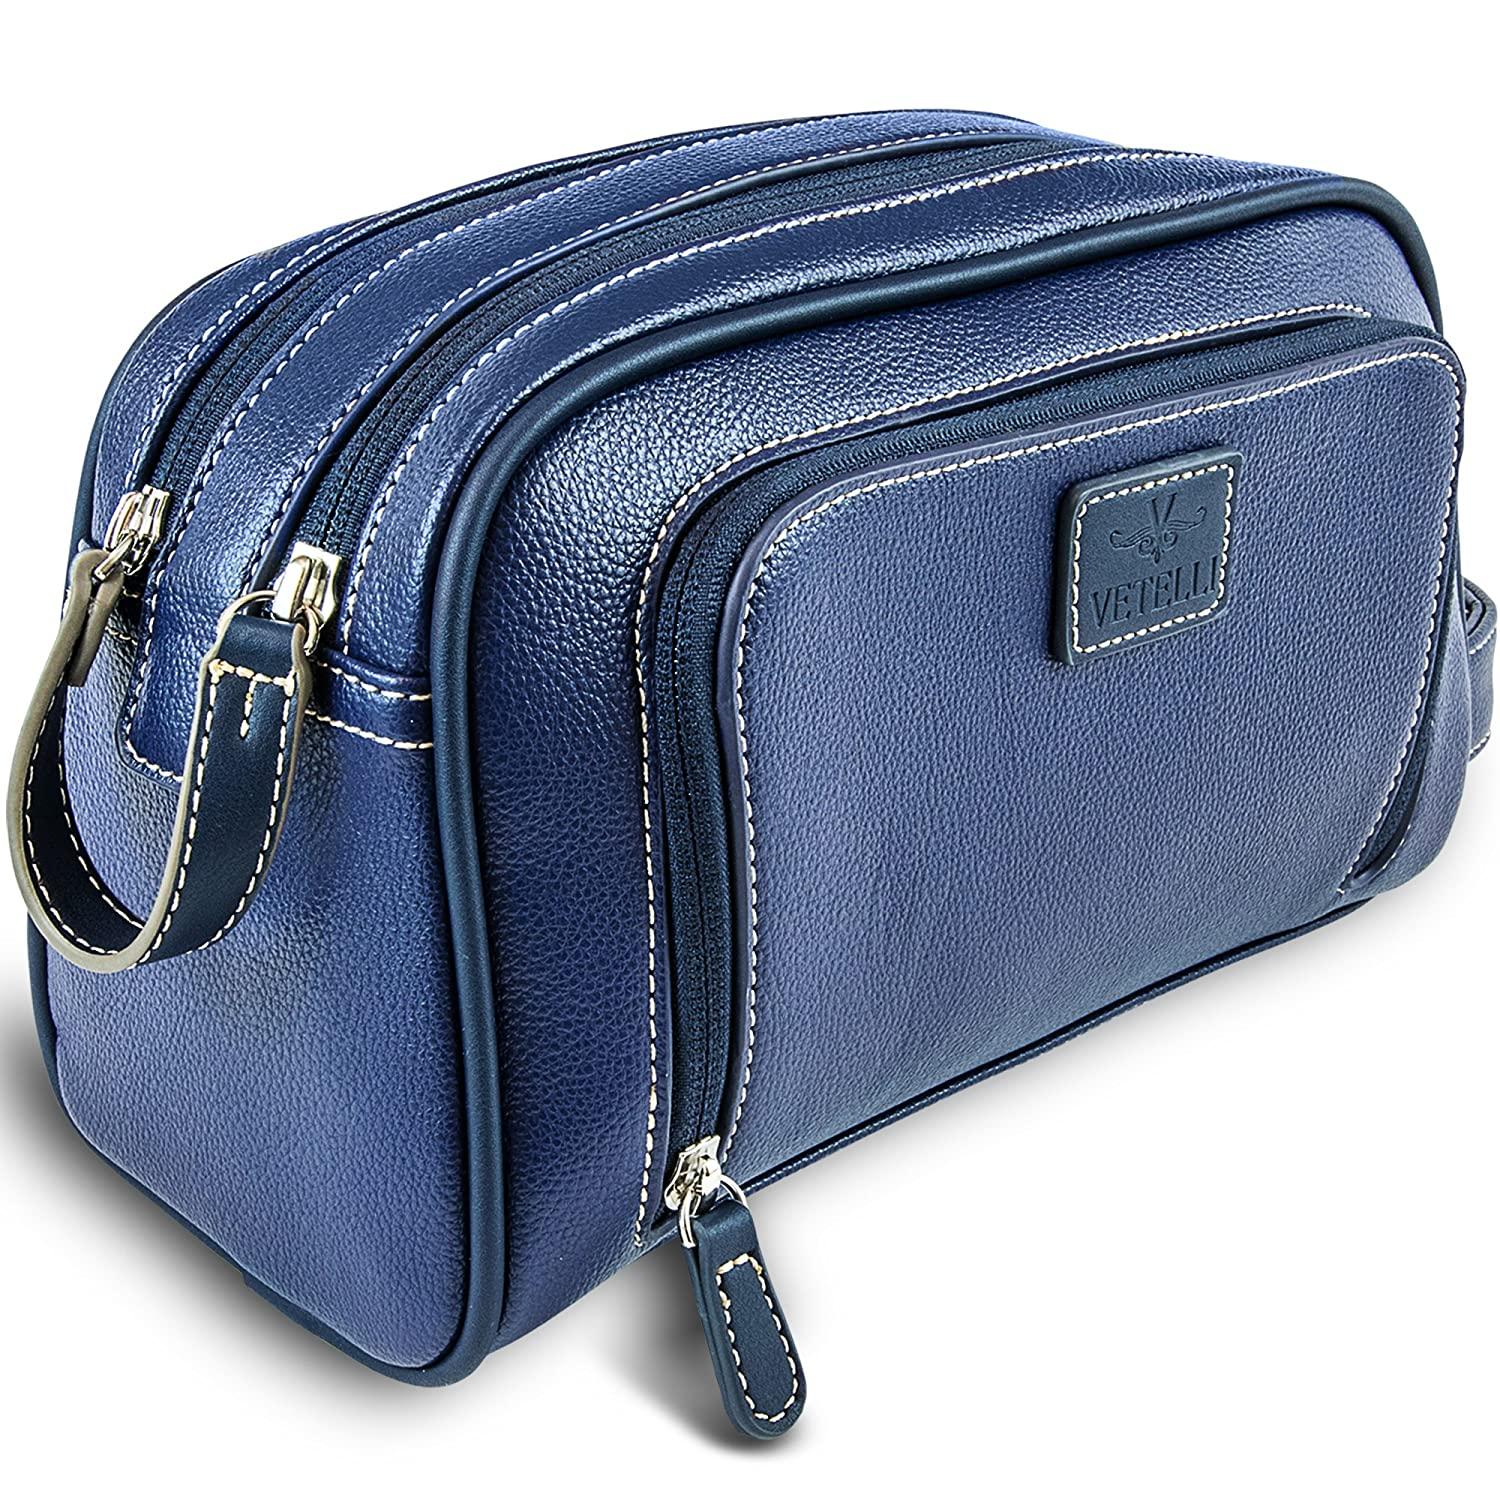 Vetelli Gio Leather Toiletry Bag for Men – Dopp Kit – Handmade for Travelling Vacations and Adventures Blue